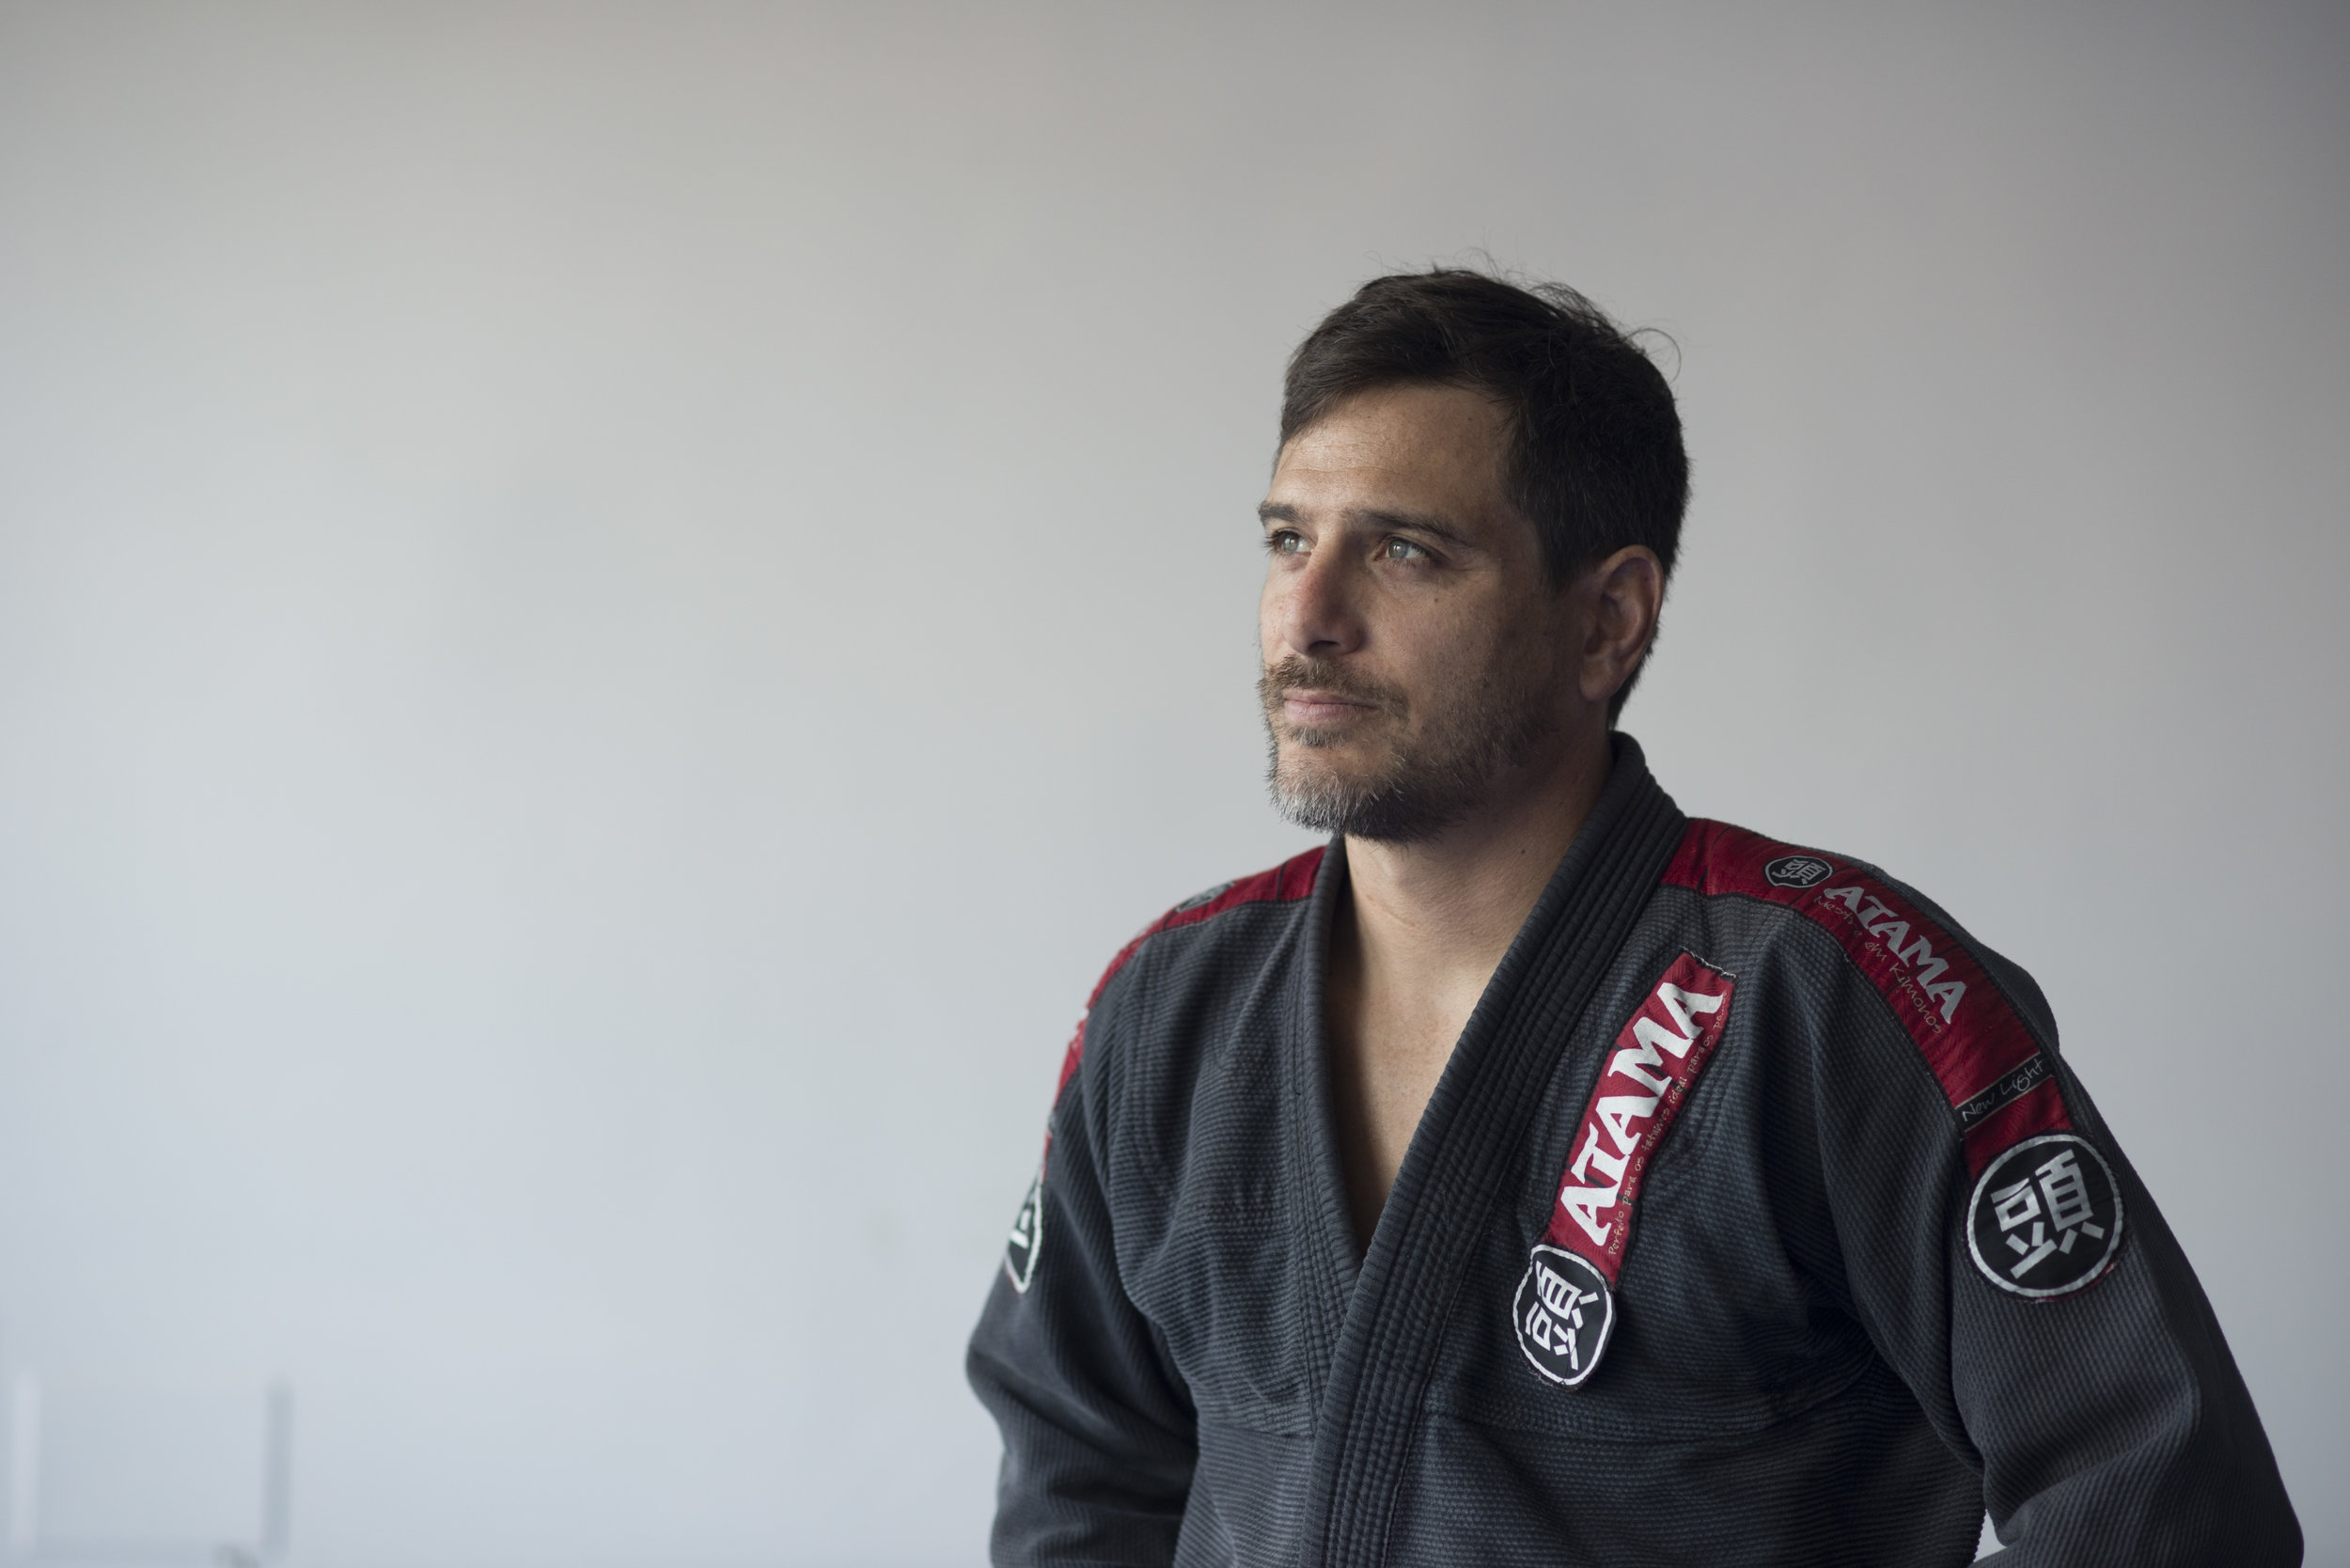 Joe Notebaert- Event Manager/Bookings/ BJJ INSTRUCTOR - Originally from Phoenix Arizona, I now live in Mallorca following a 10 year stint in London England. In London I trained at Roger Gracie Academy and shortly after winning my 2nd IBJJF World Championship at Brown belt Masters I received my black belt from Cesar Lima under the approval of Roger Gracie.I am also a director of a travel agency and I decided to combine my love of travel and my travel planning experience with my love for BJJ by launching the Mallorca BJJ & Yoga Festival-Head instructor at Mallorca BJJ, El Toro Mallorca https://www.mallorcabjj.com/-BJJ Black Belt- IBJJF World Master Brown Belt Champion (2017) purple (2013)